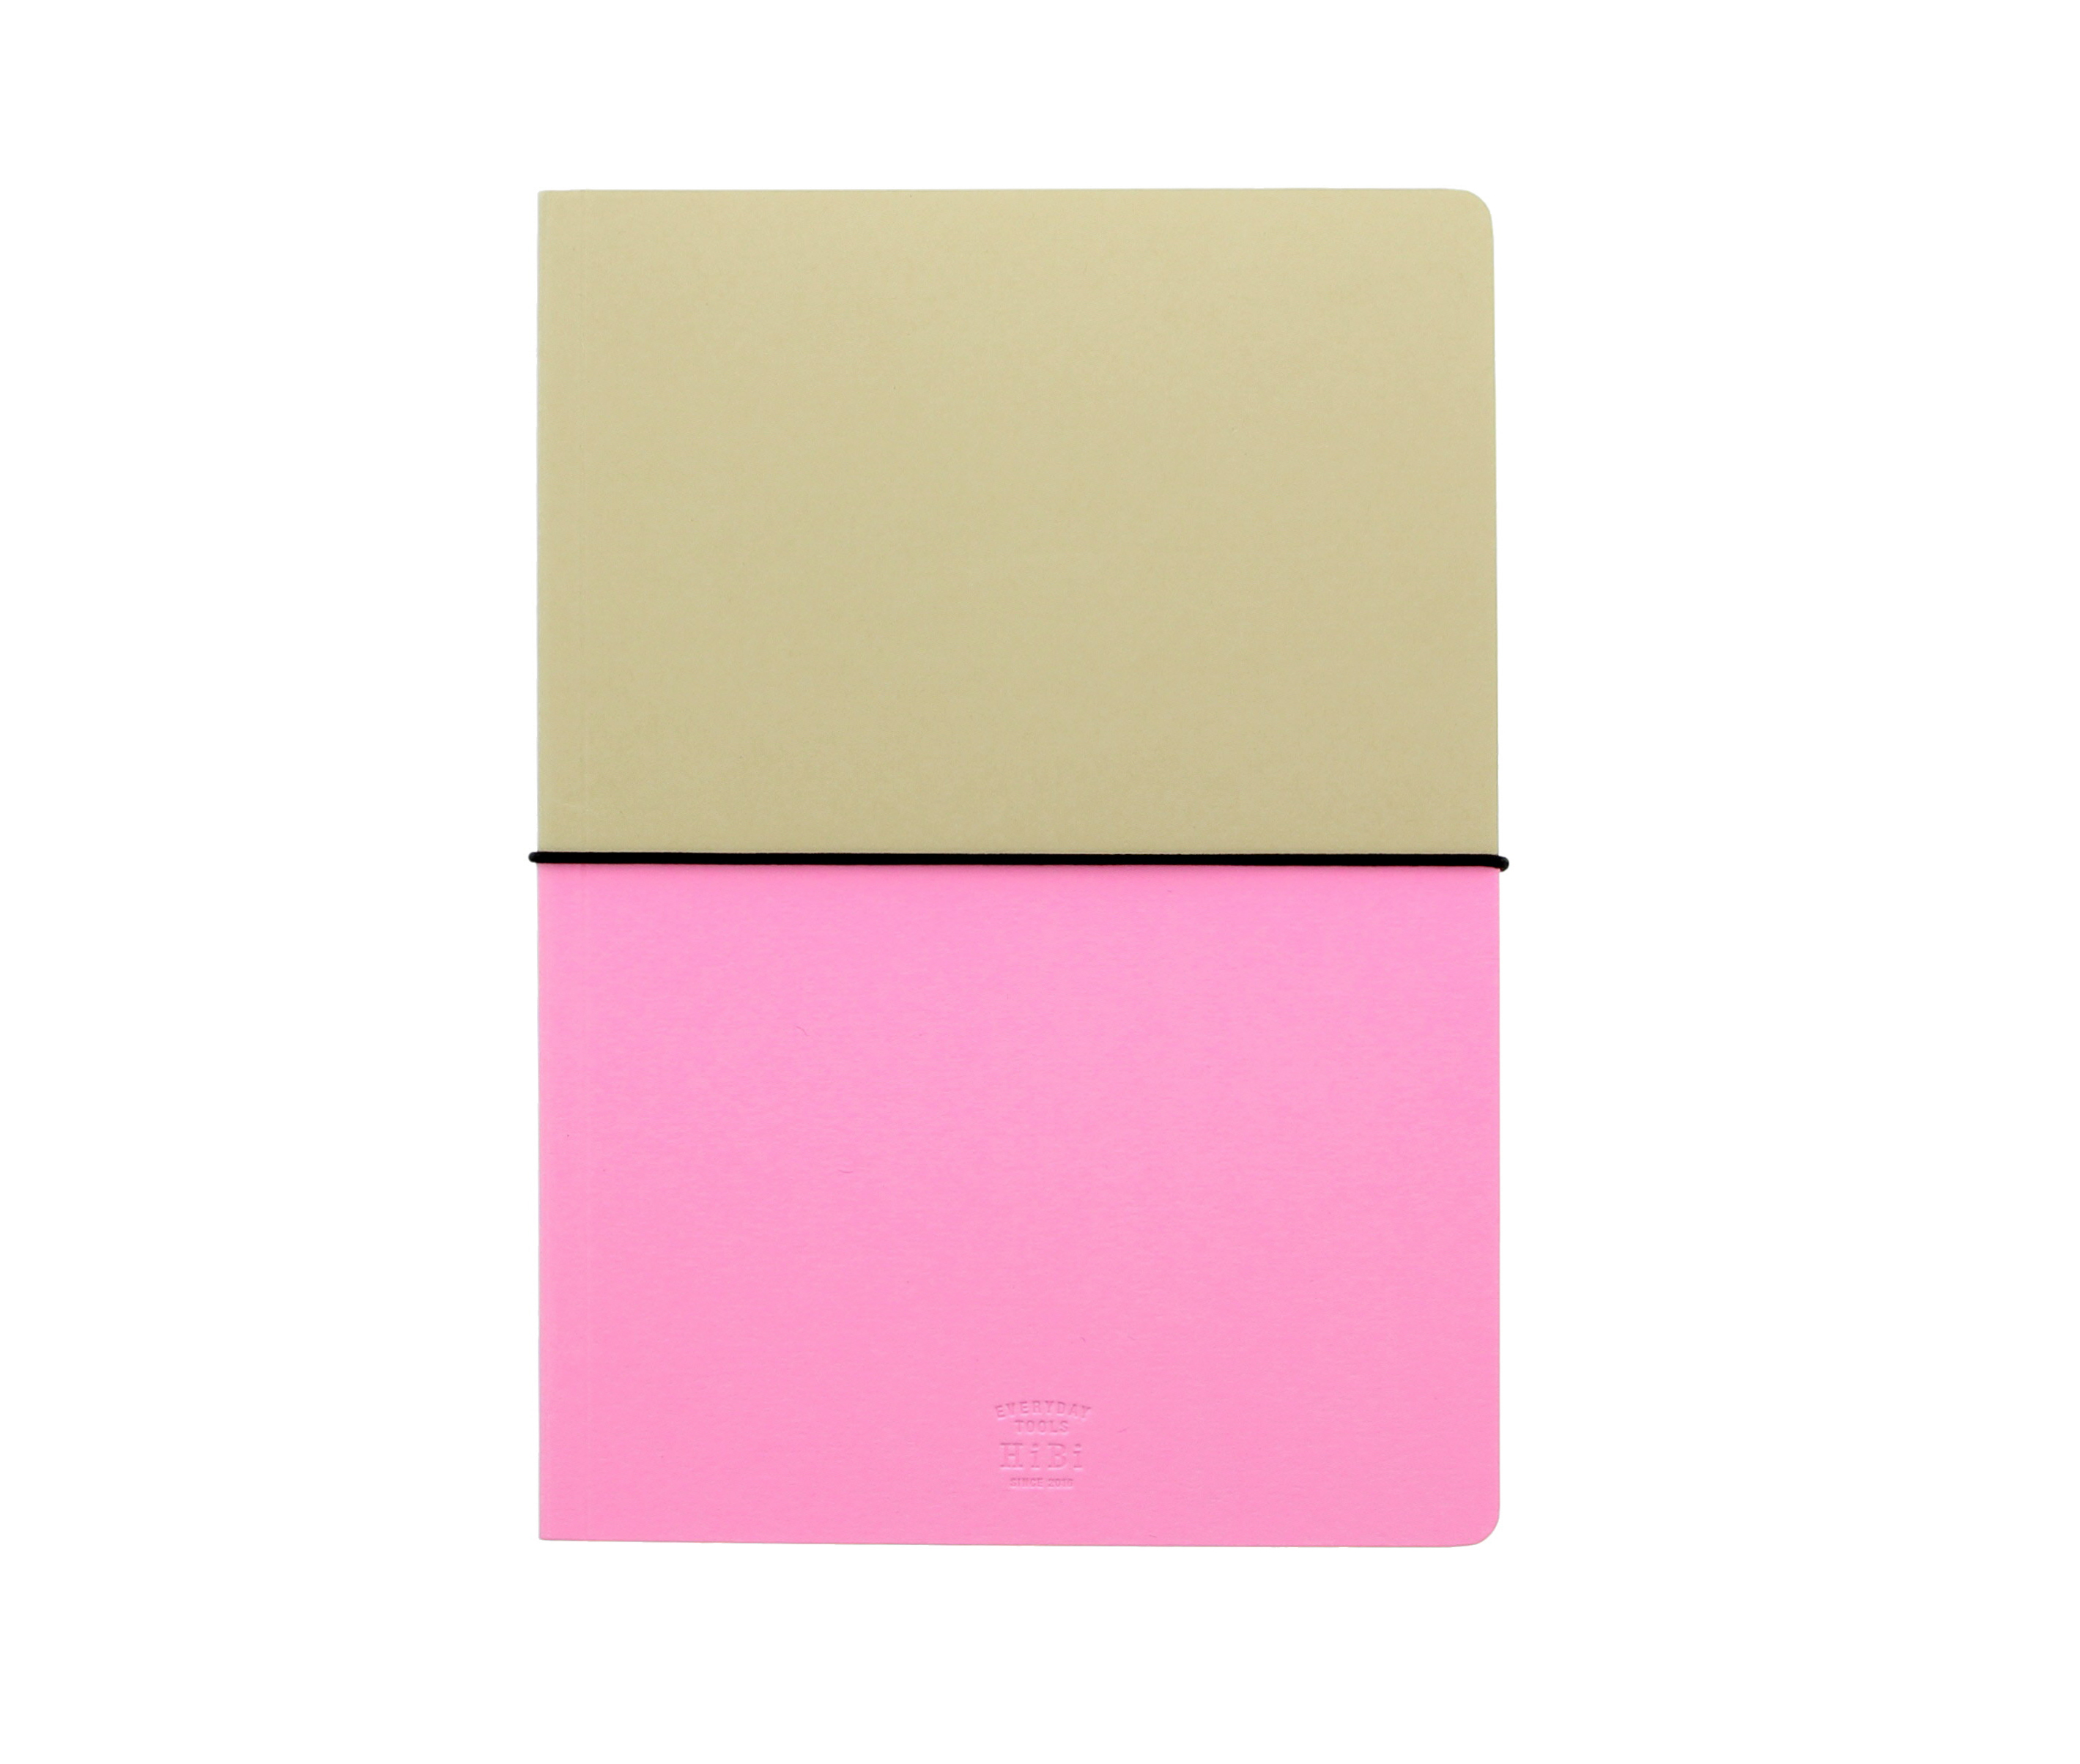 Cahier HiBi rose Mark's